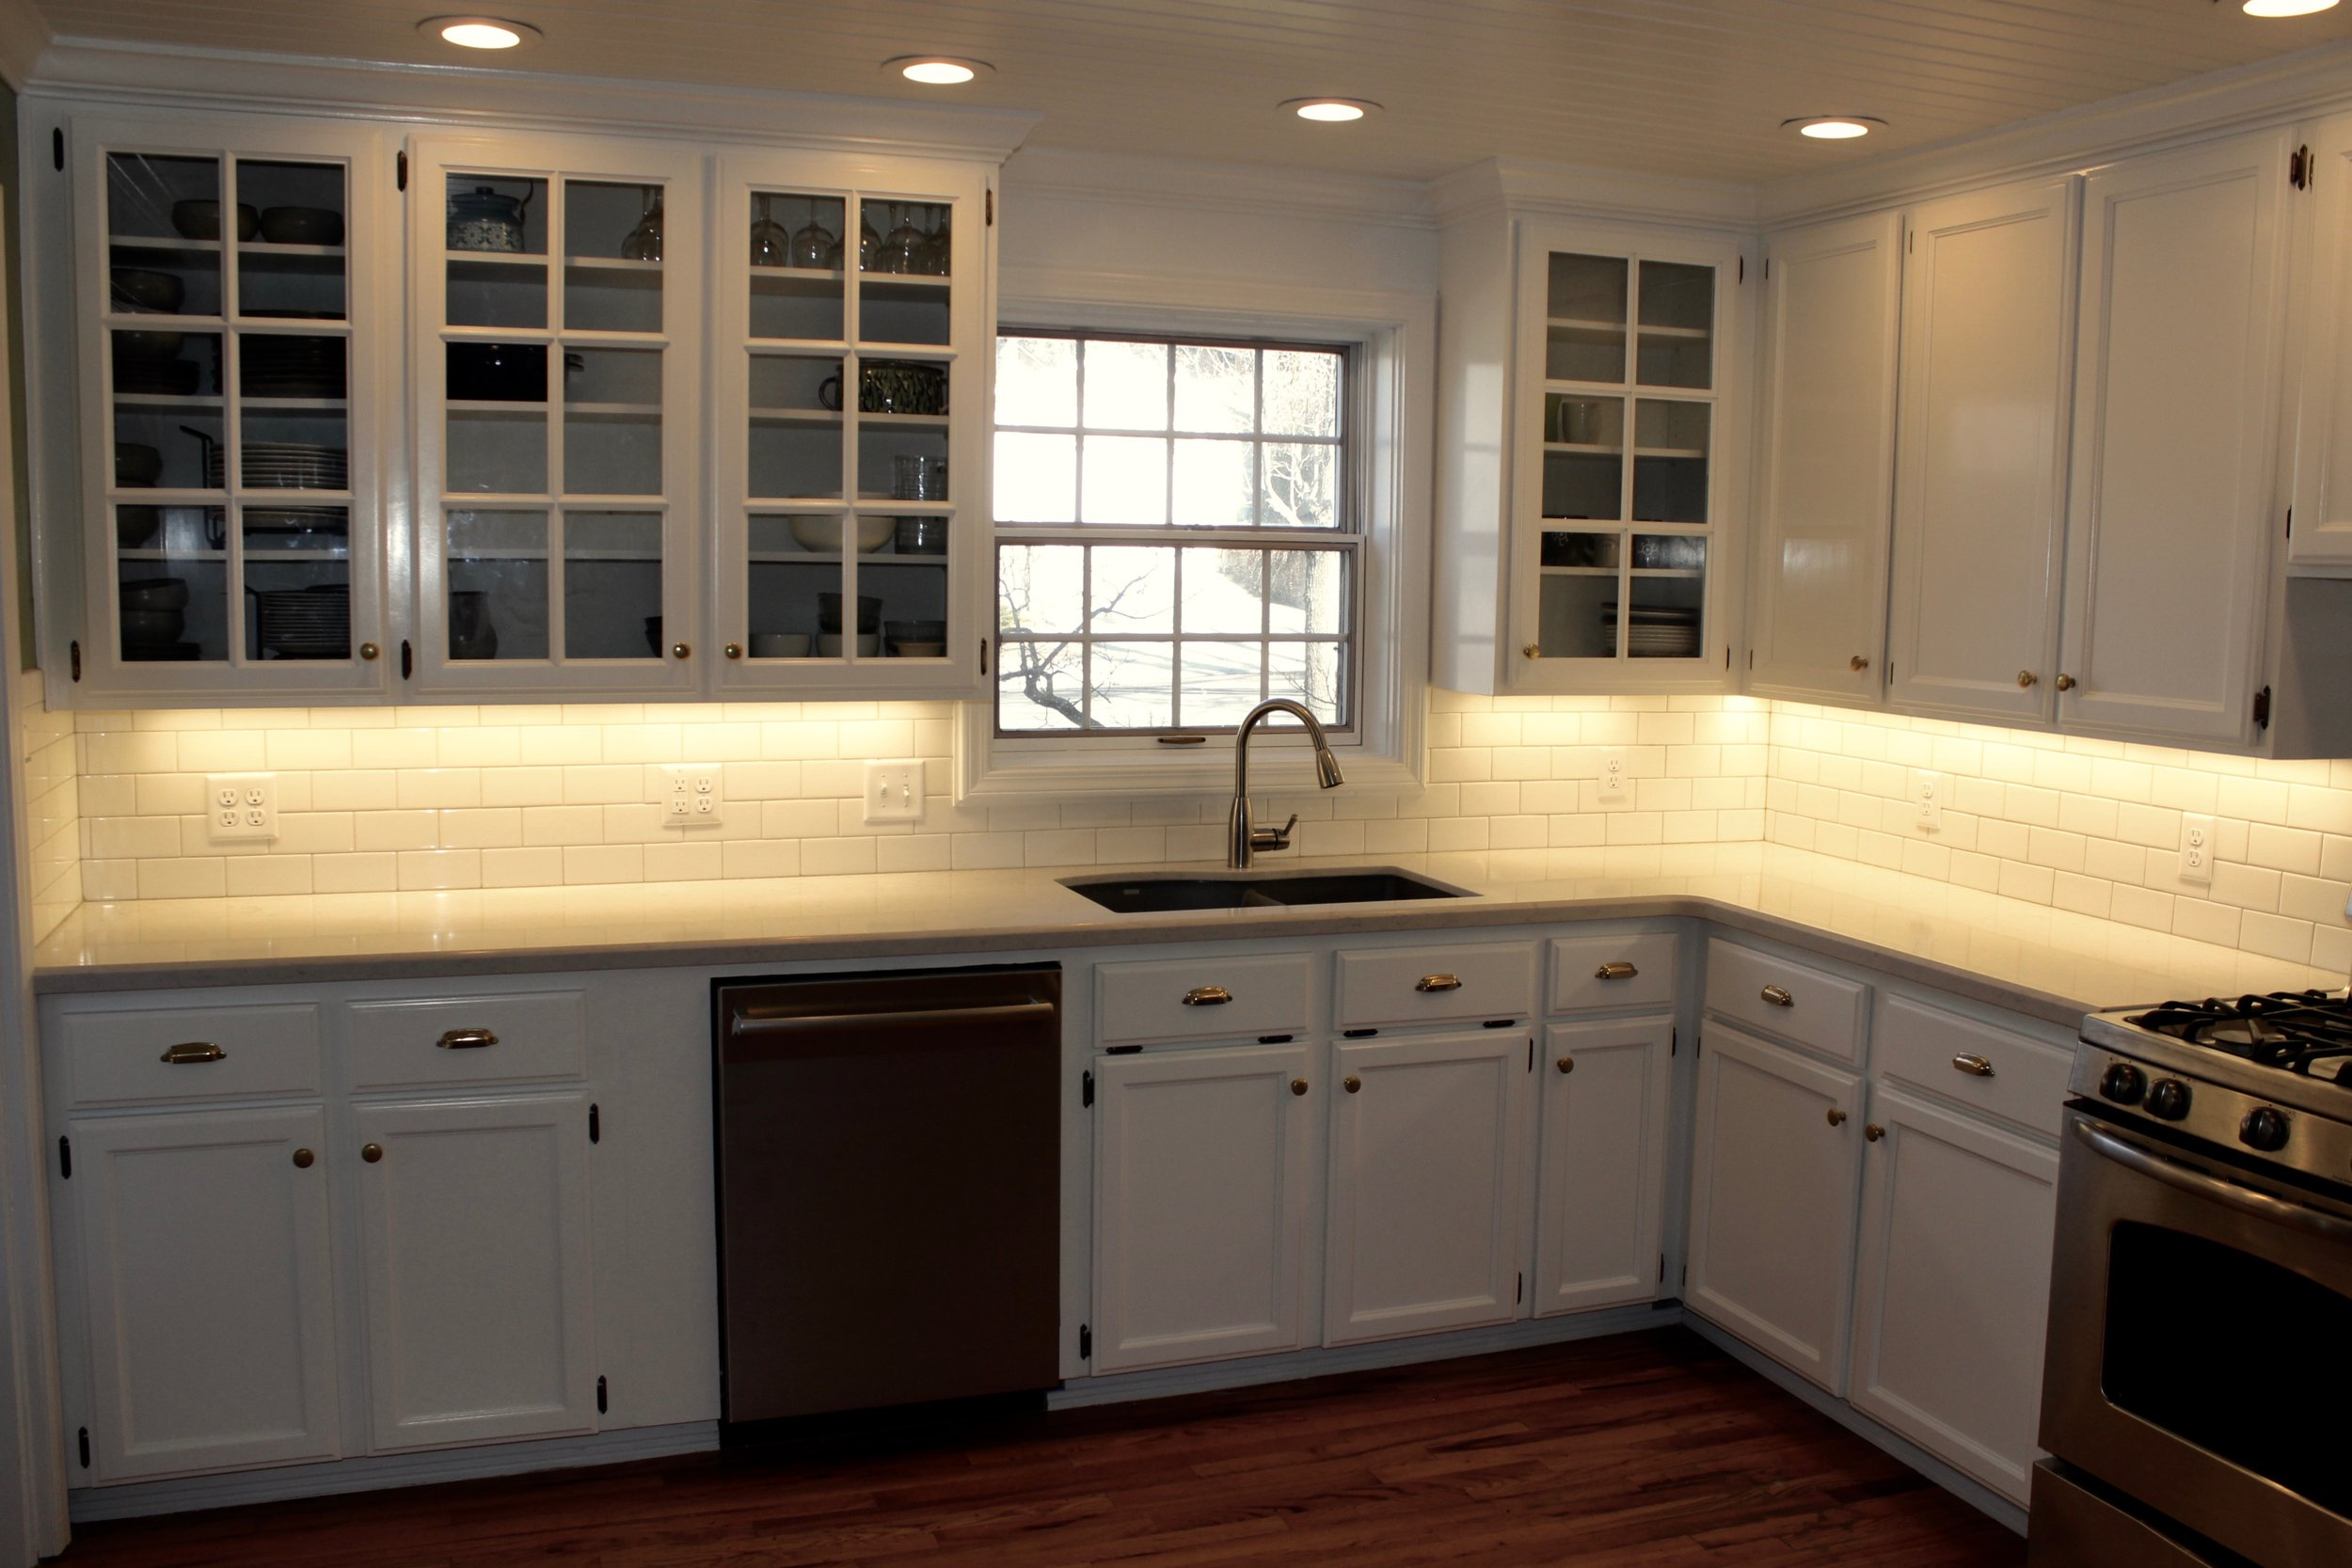 Reitz Builders Verde kitchen remodel 3.jpg